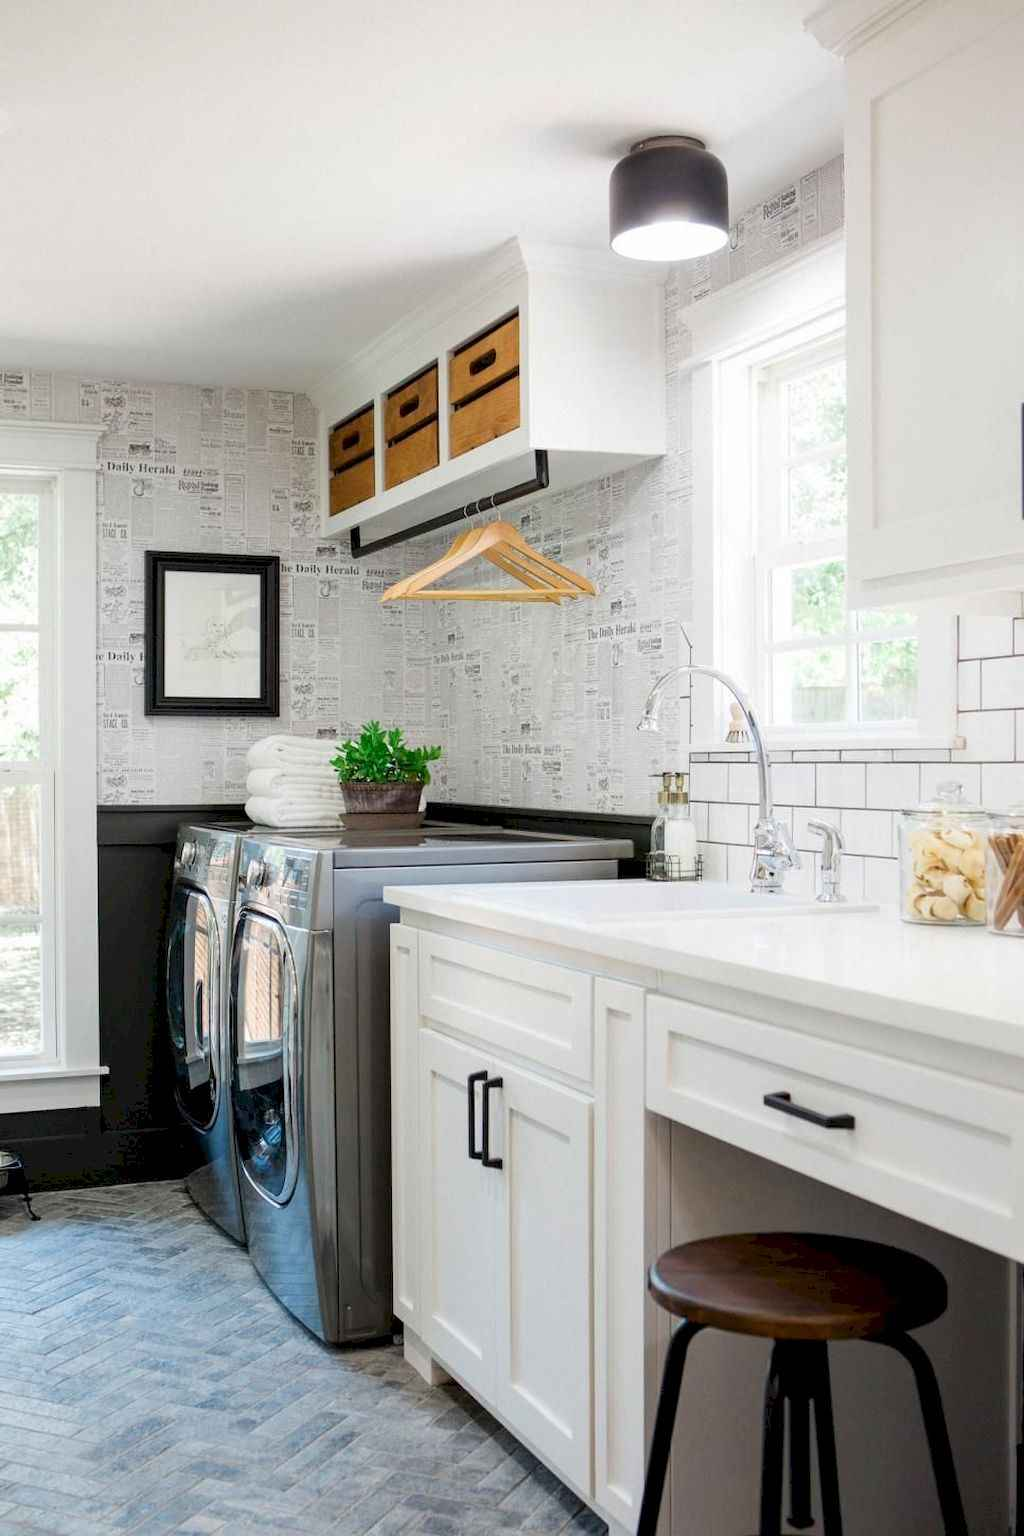 45 Rustic Farmhouse Laundry Room Design Ideas and Makeover (11)